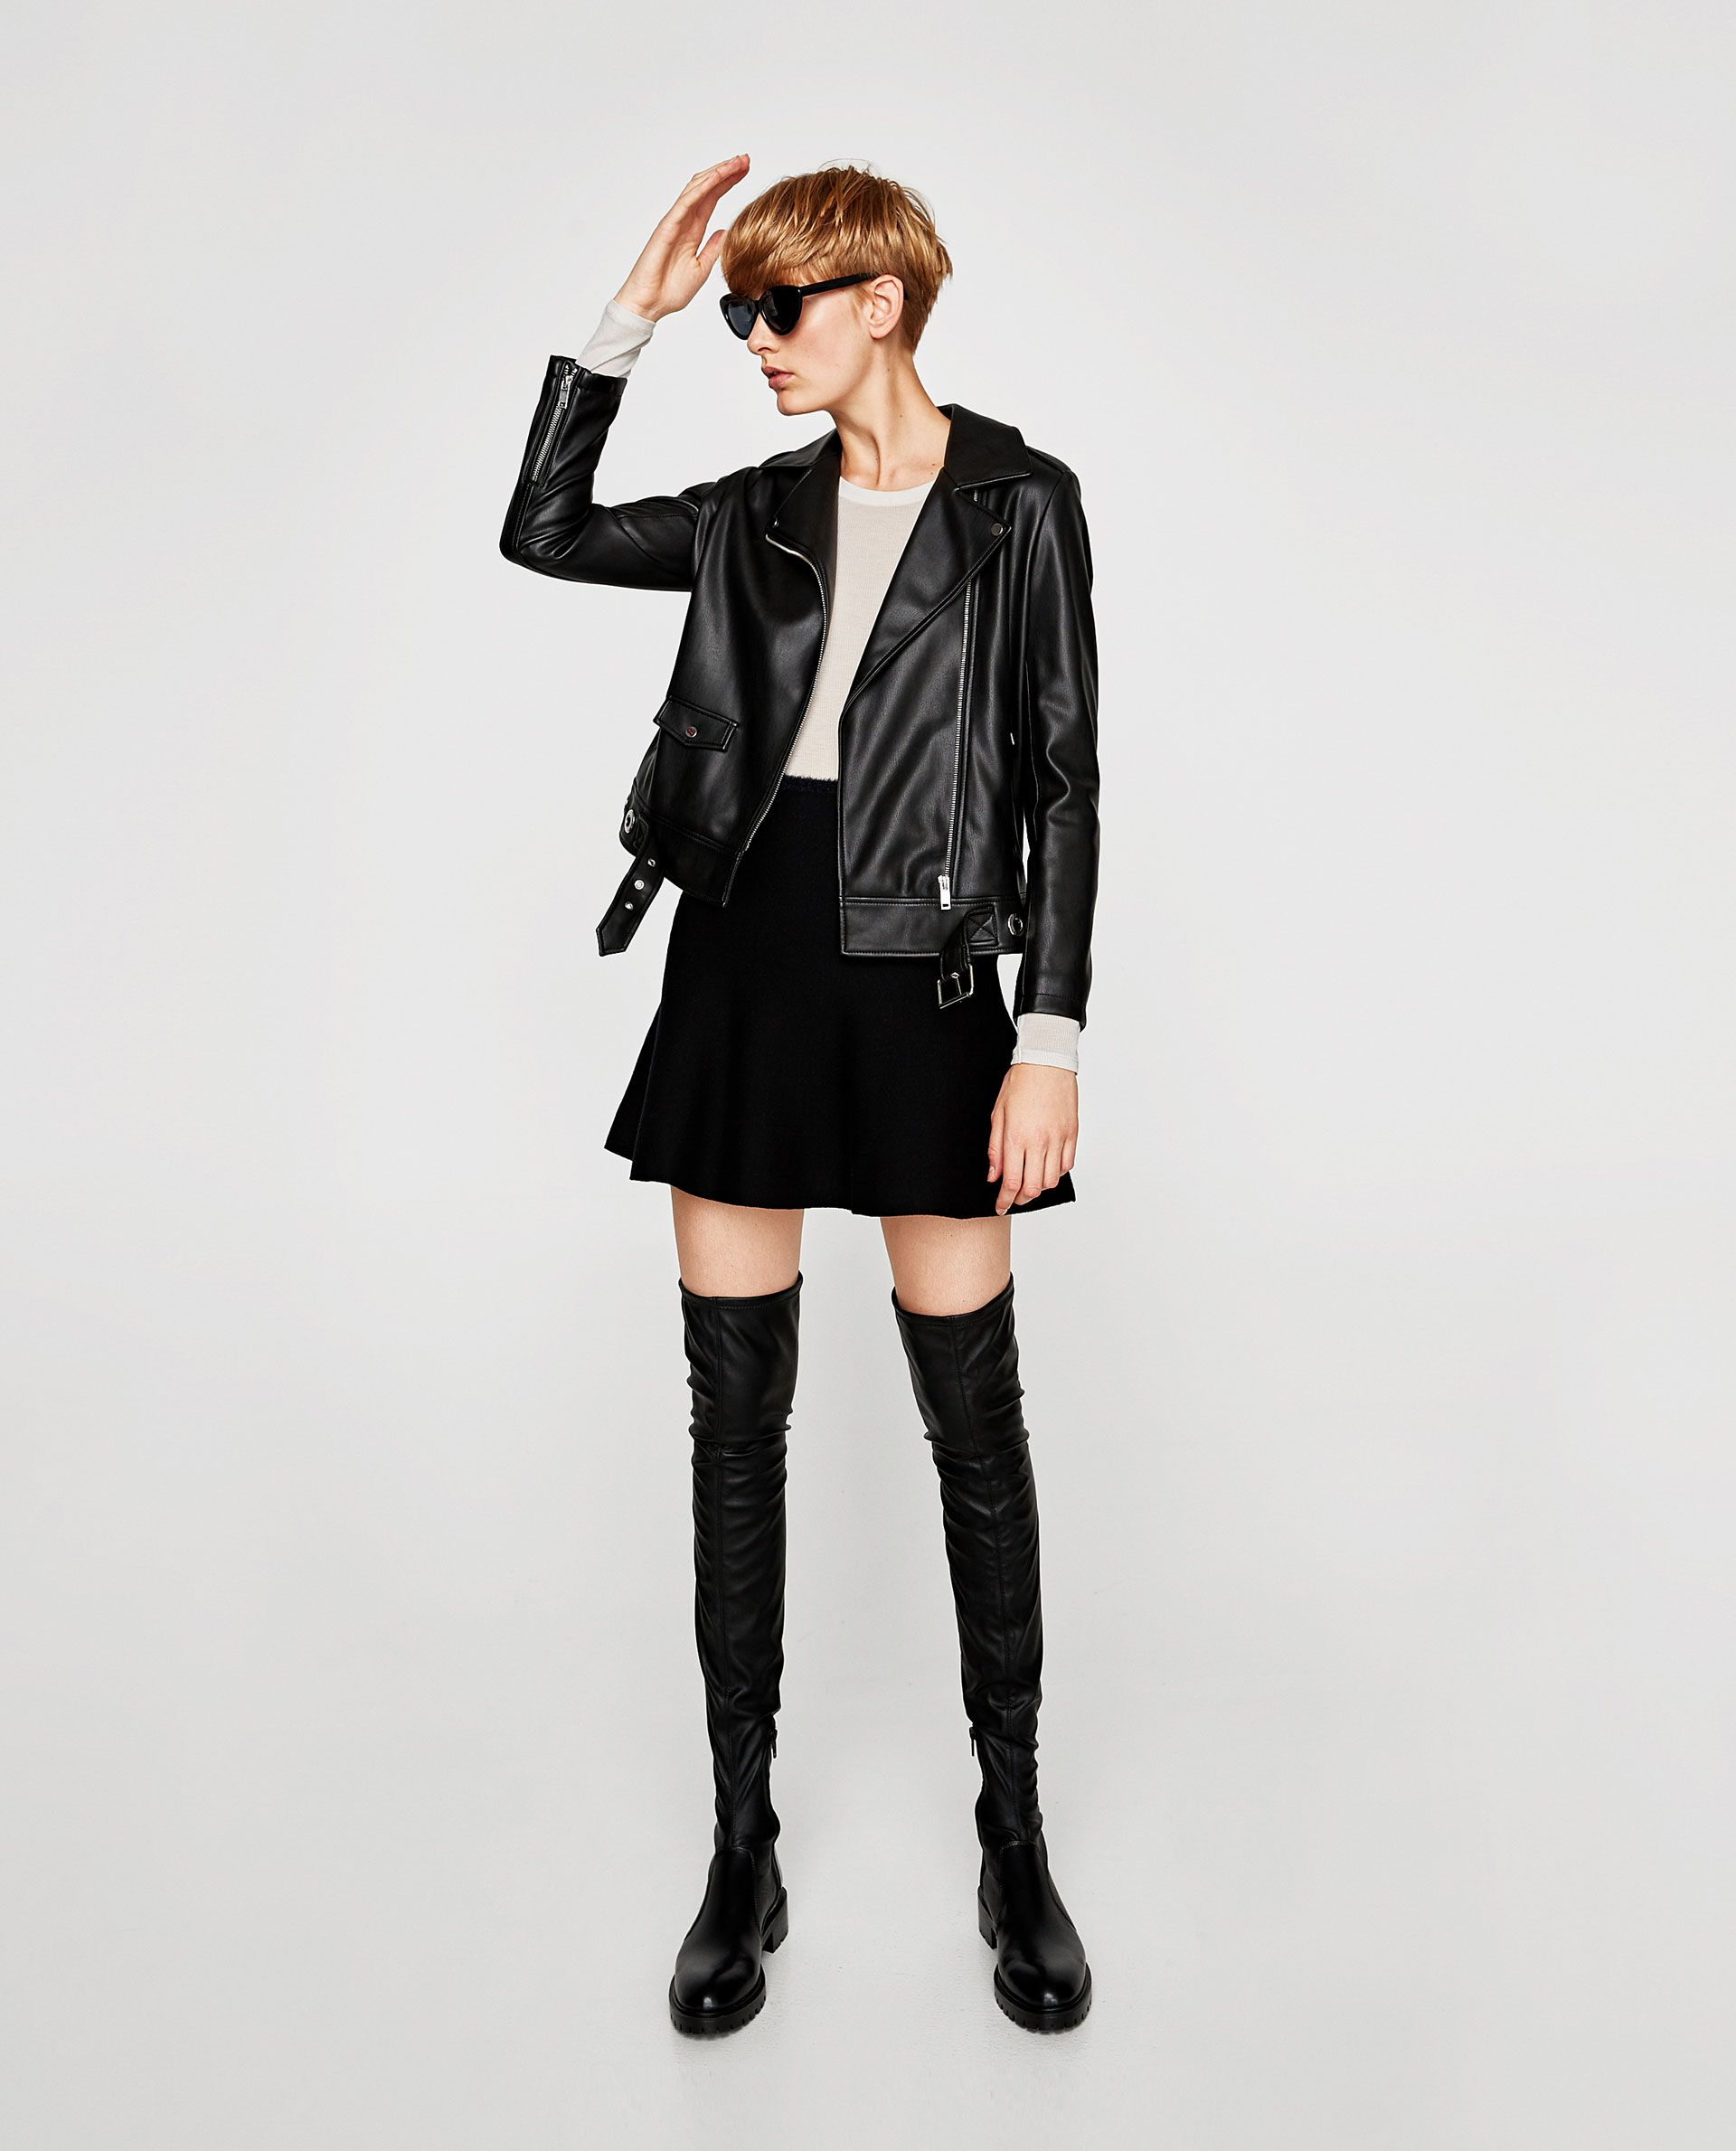 d2992208da7 ZARA - WOMAN - FLAT OVER-THE-KNEE BOOTS WITH TOE DETAIL